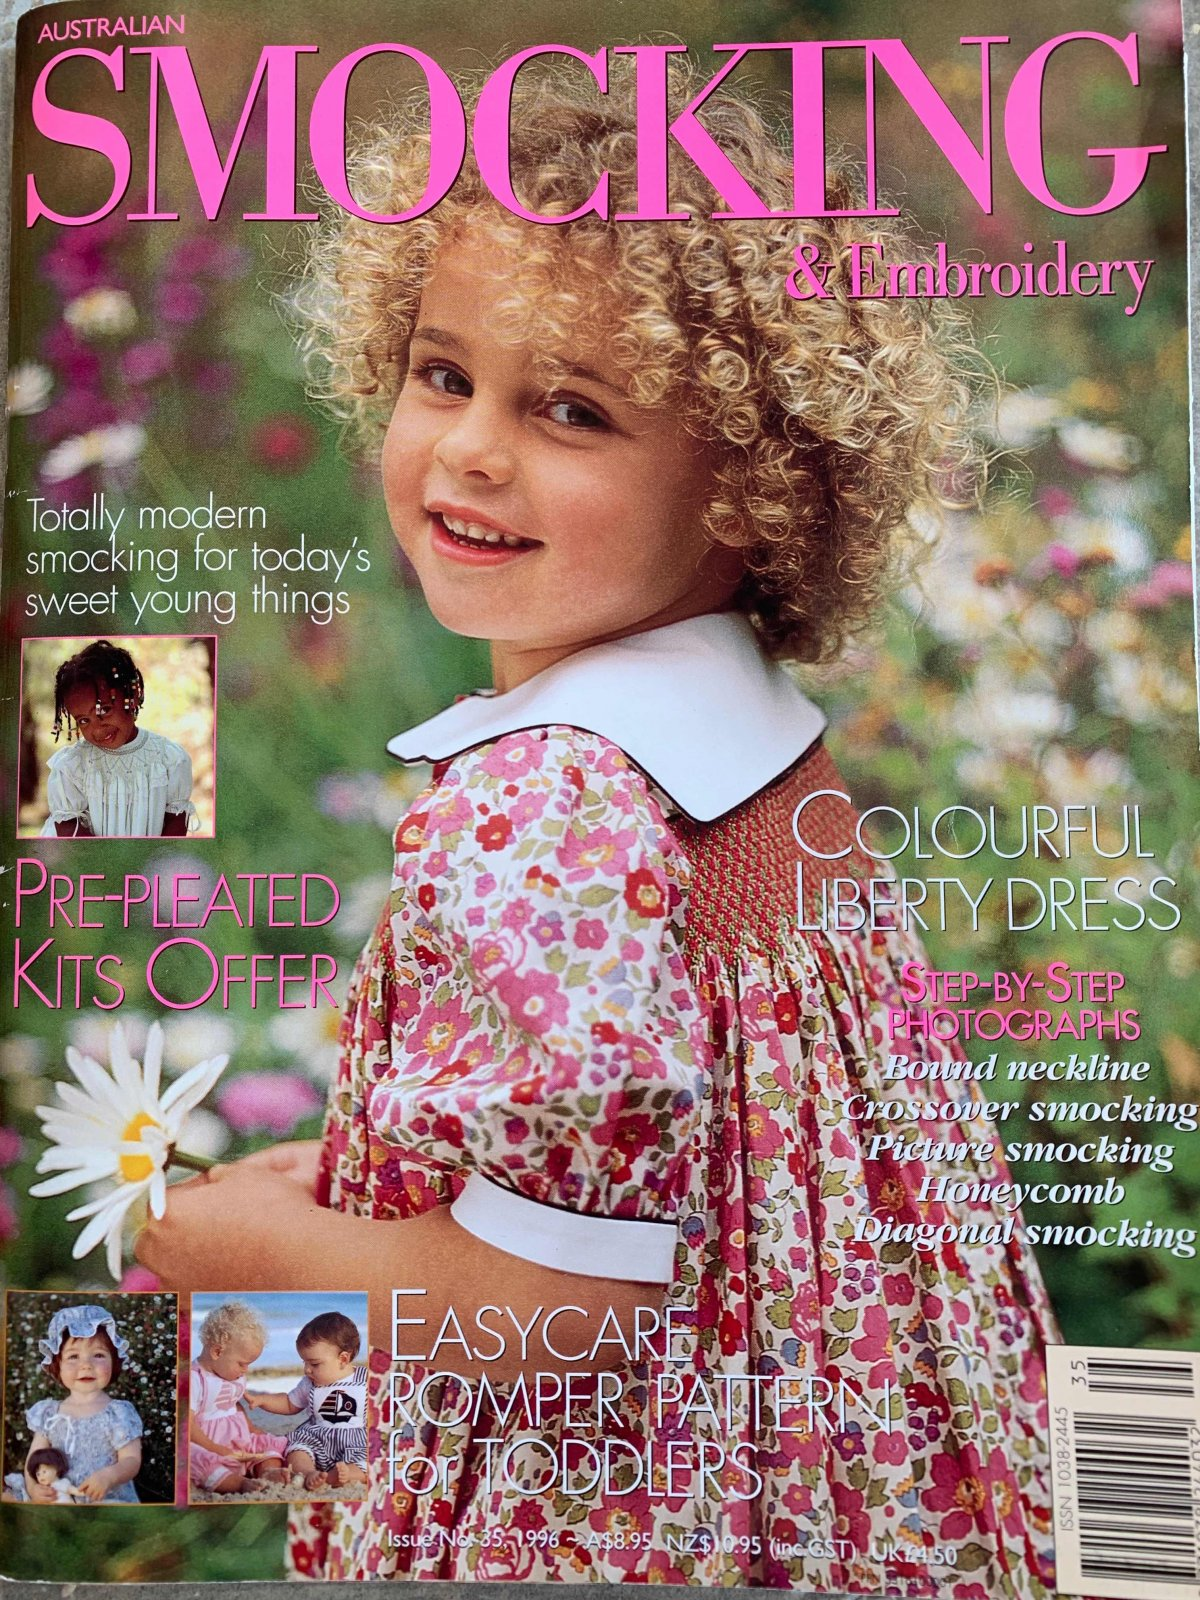 Australian Smocking & Embroidery Issue 35 (Previously Loved Item)